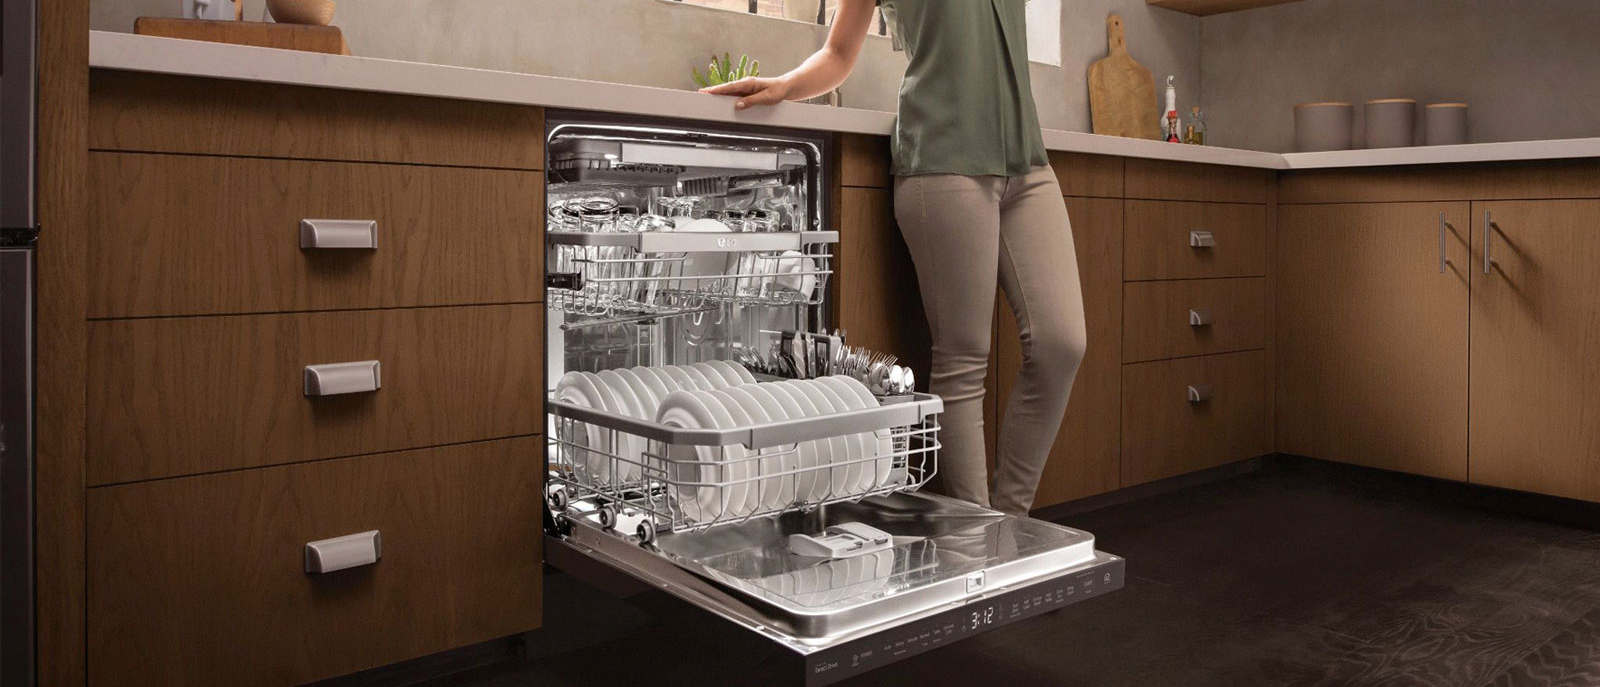 affordable dishwashers in singapore - LG DFB425FP voice control built-in dishwasher